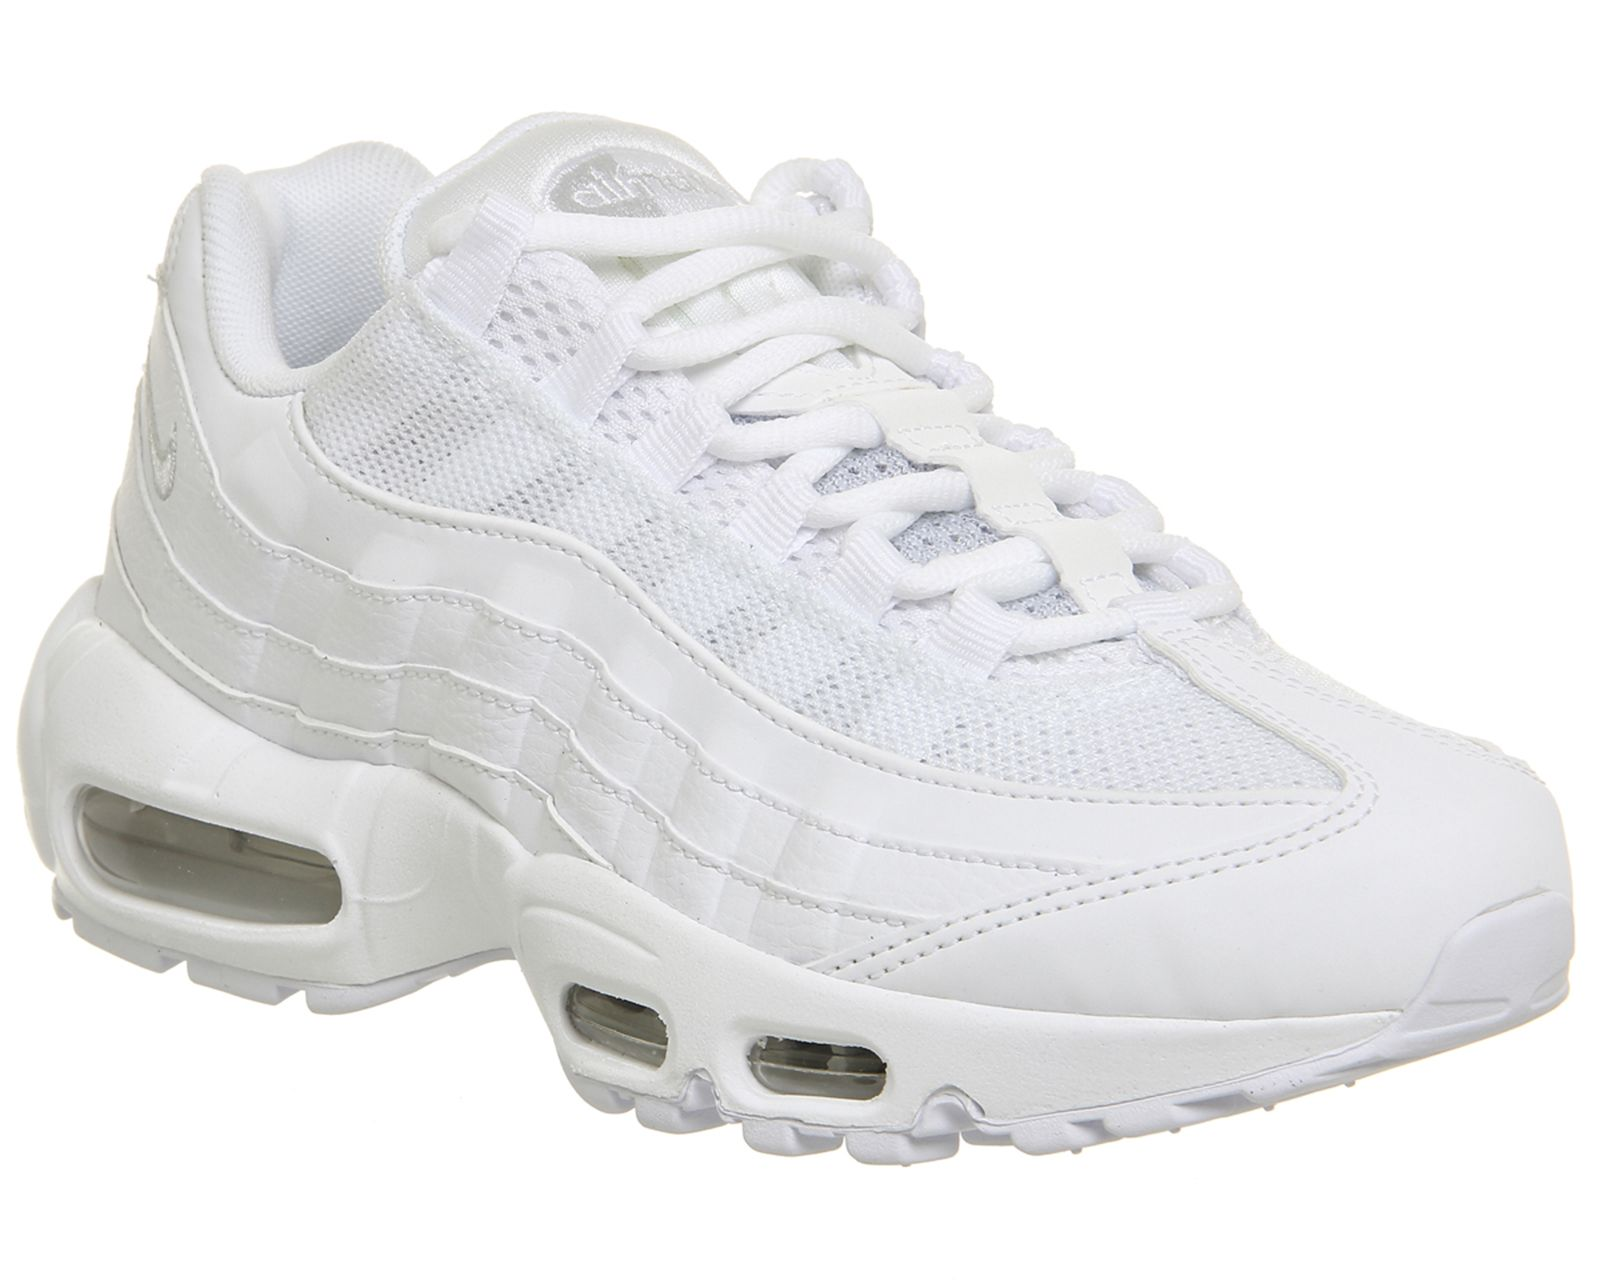 buy online ba678 4a4e9 Nike, Air Max 95, White Pure Platinum | outfits in 2019 ...